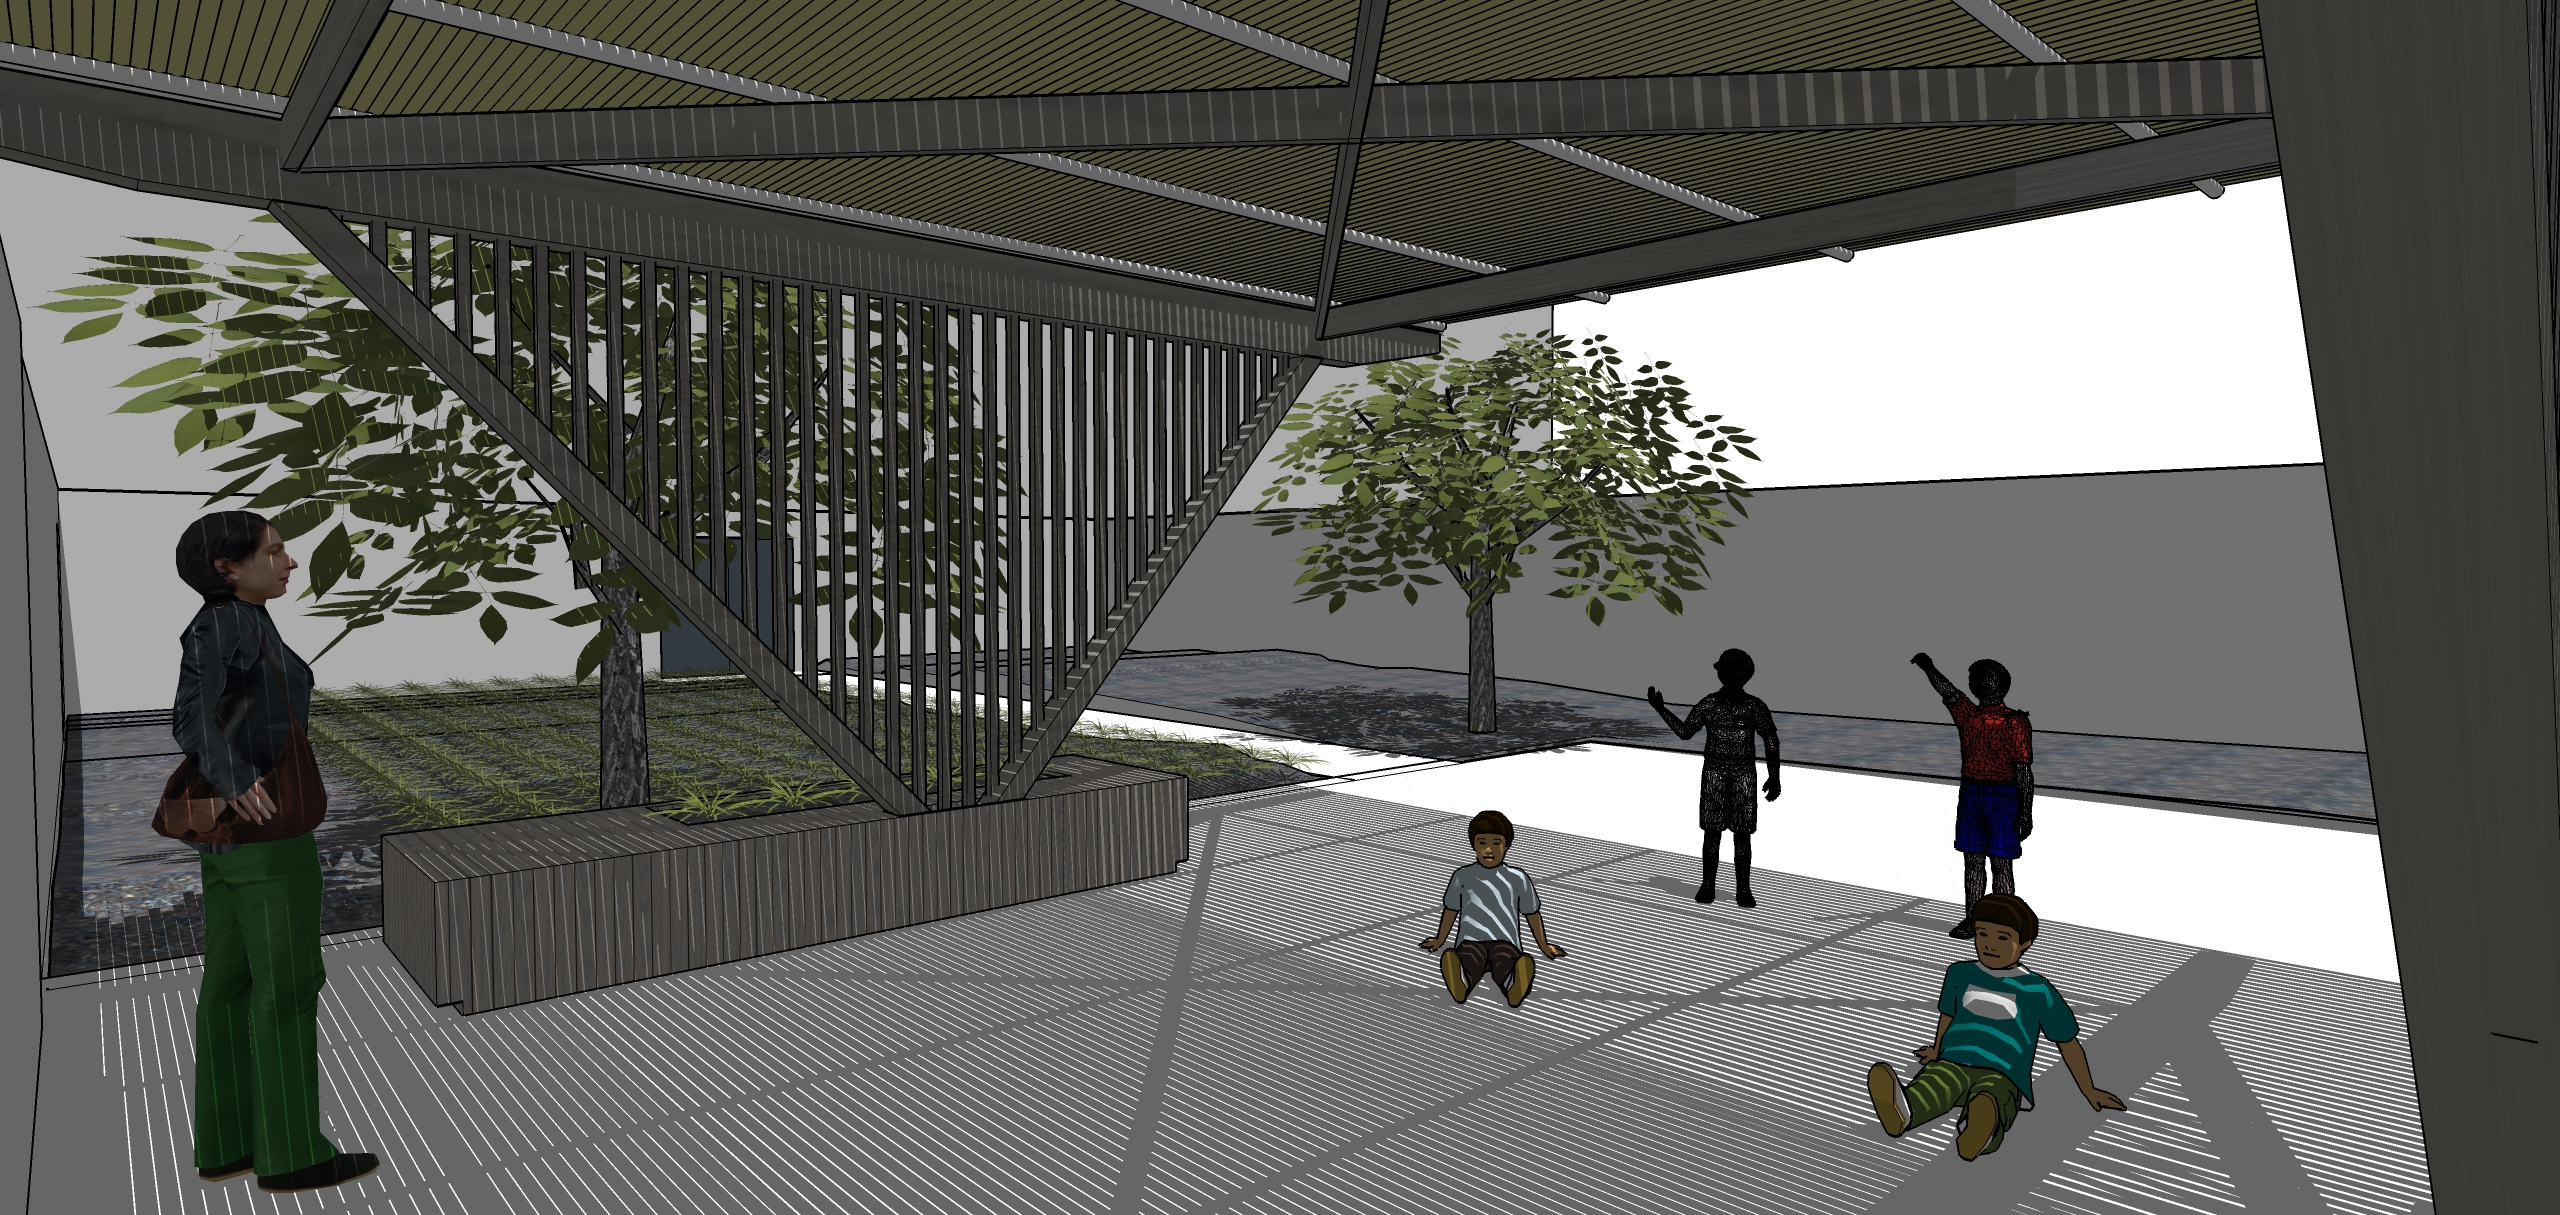 A bamboo pole roof is supported by wood beams and steel structural posts emerging from planter benches.